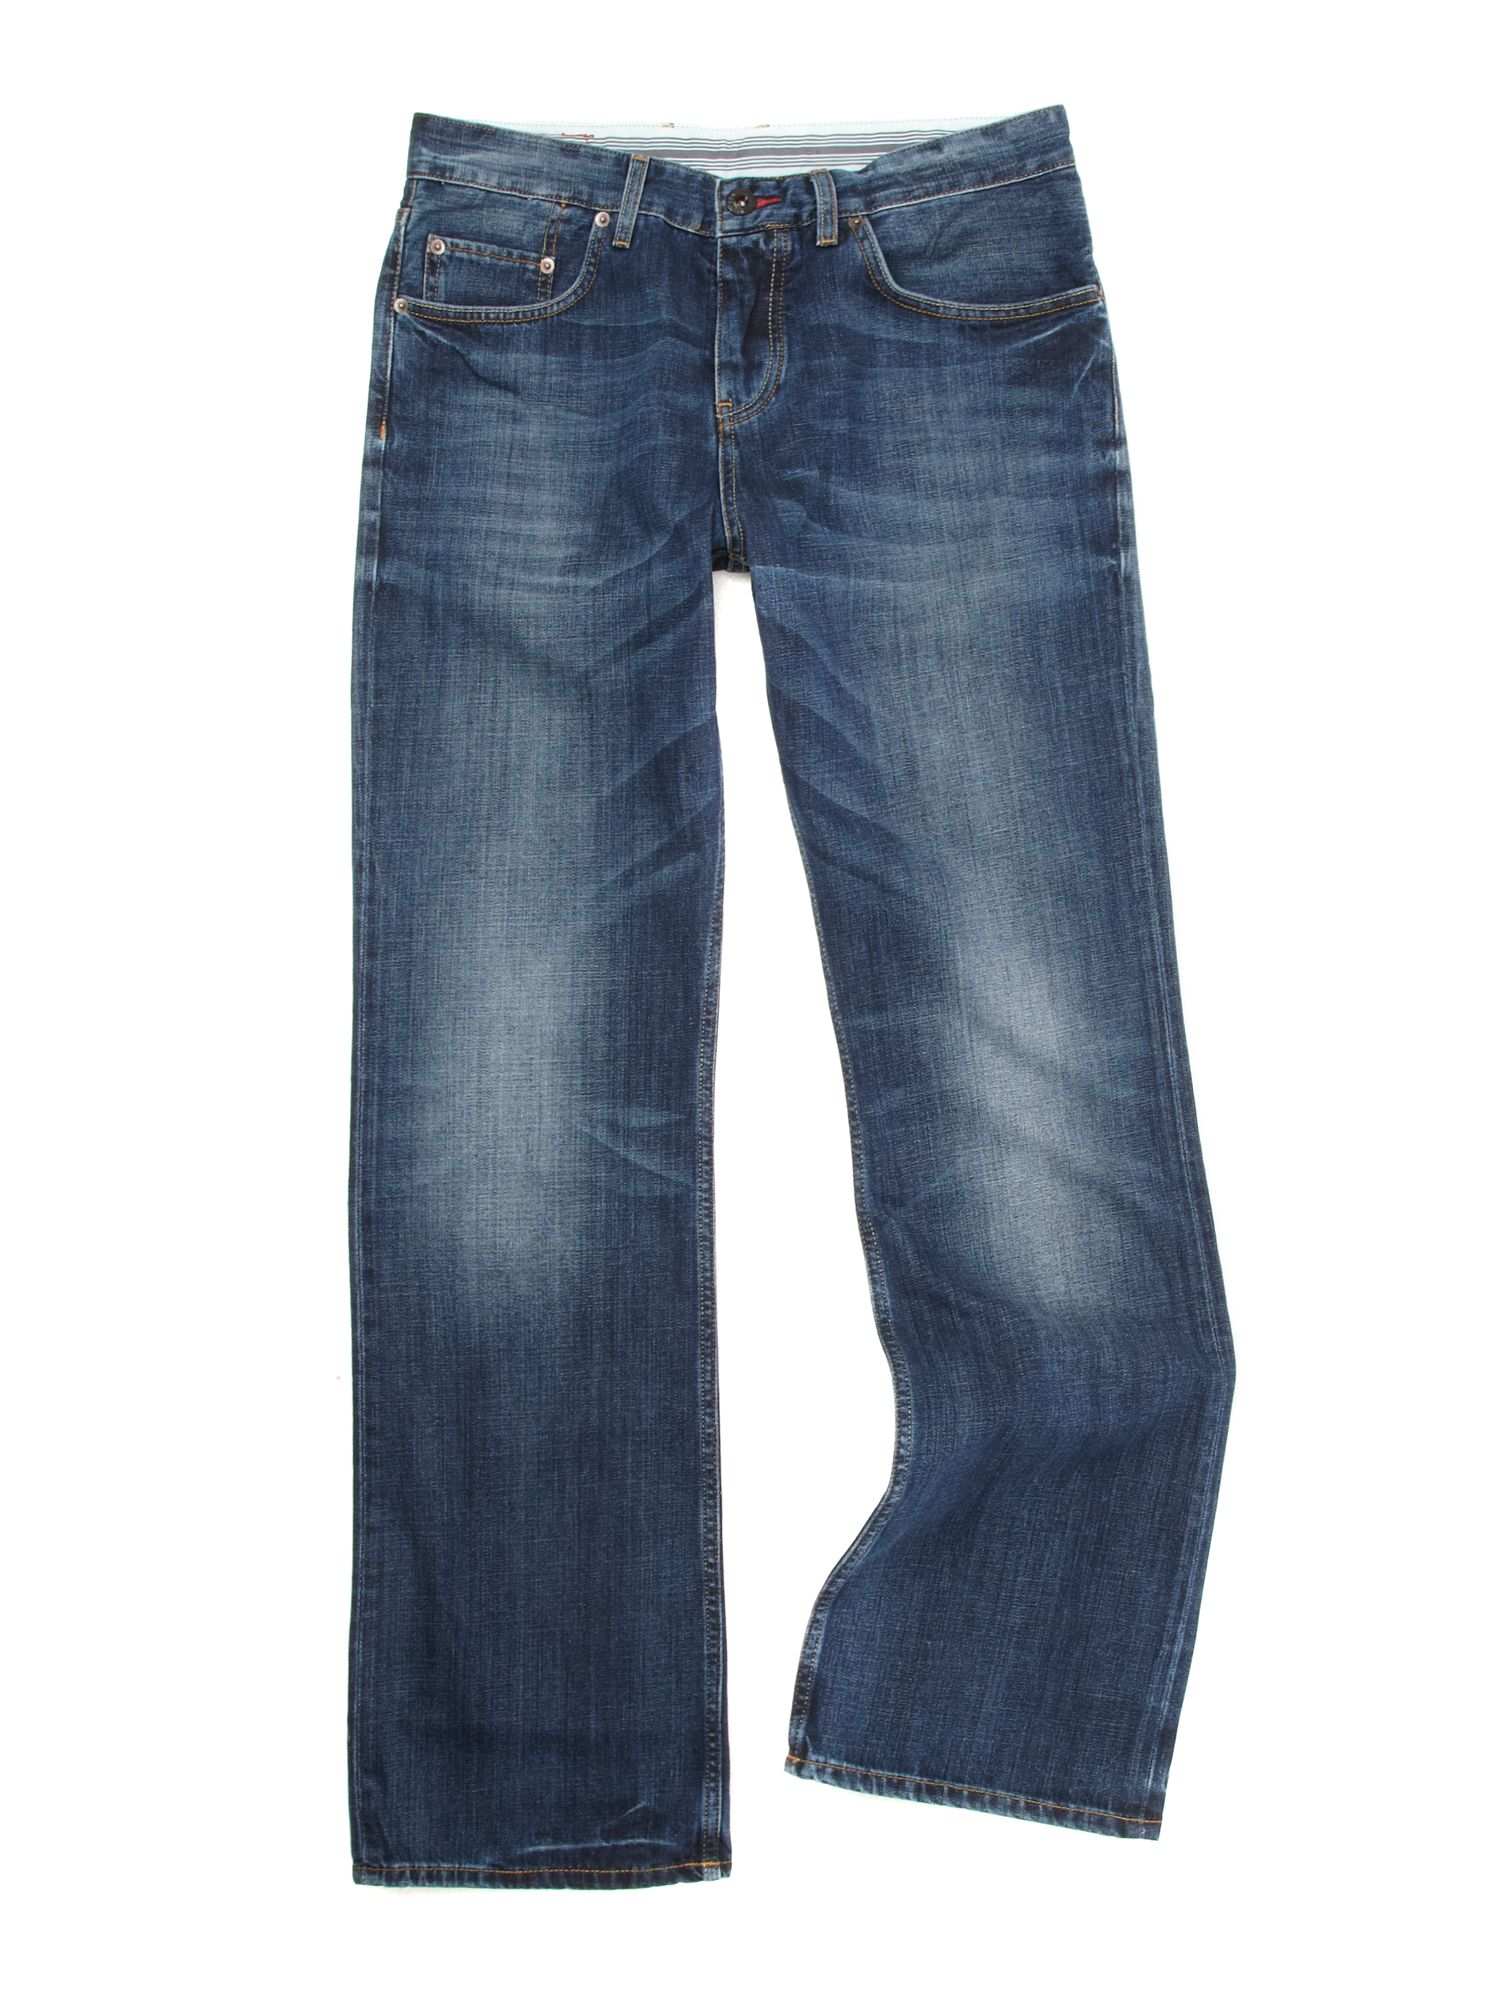 tommy hilfiger bedford bootcut jeans in blue for men lyst. Black Bedroom Furniture Sets. Home Design Ideas